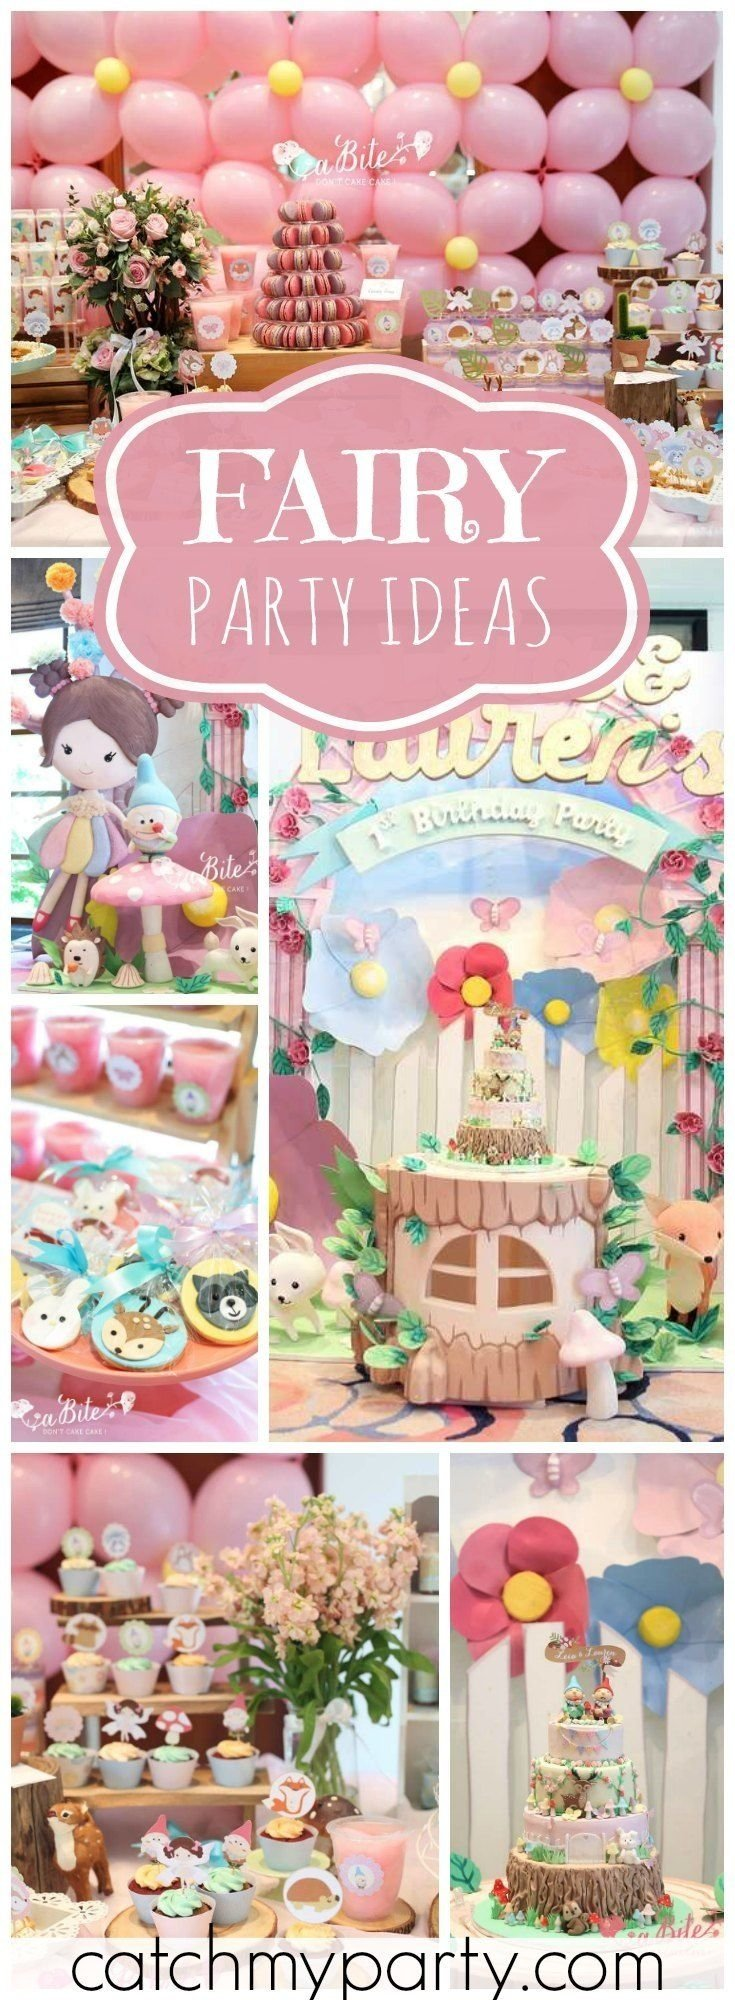 10 Attractive Girls 5Th Birthday Party Ideas fairy birthday leia laurens fairy garden girl birthday 1 2020